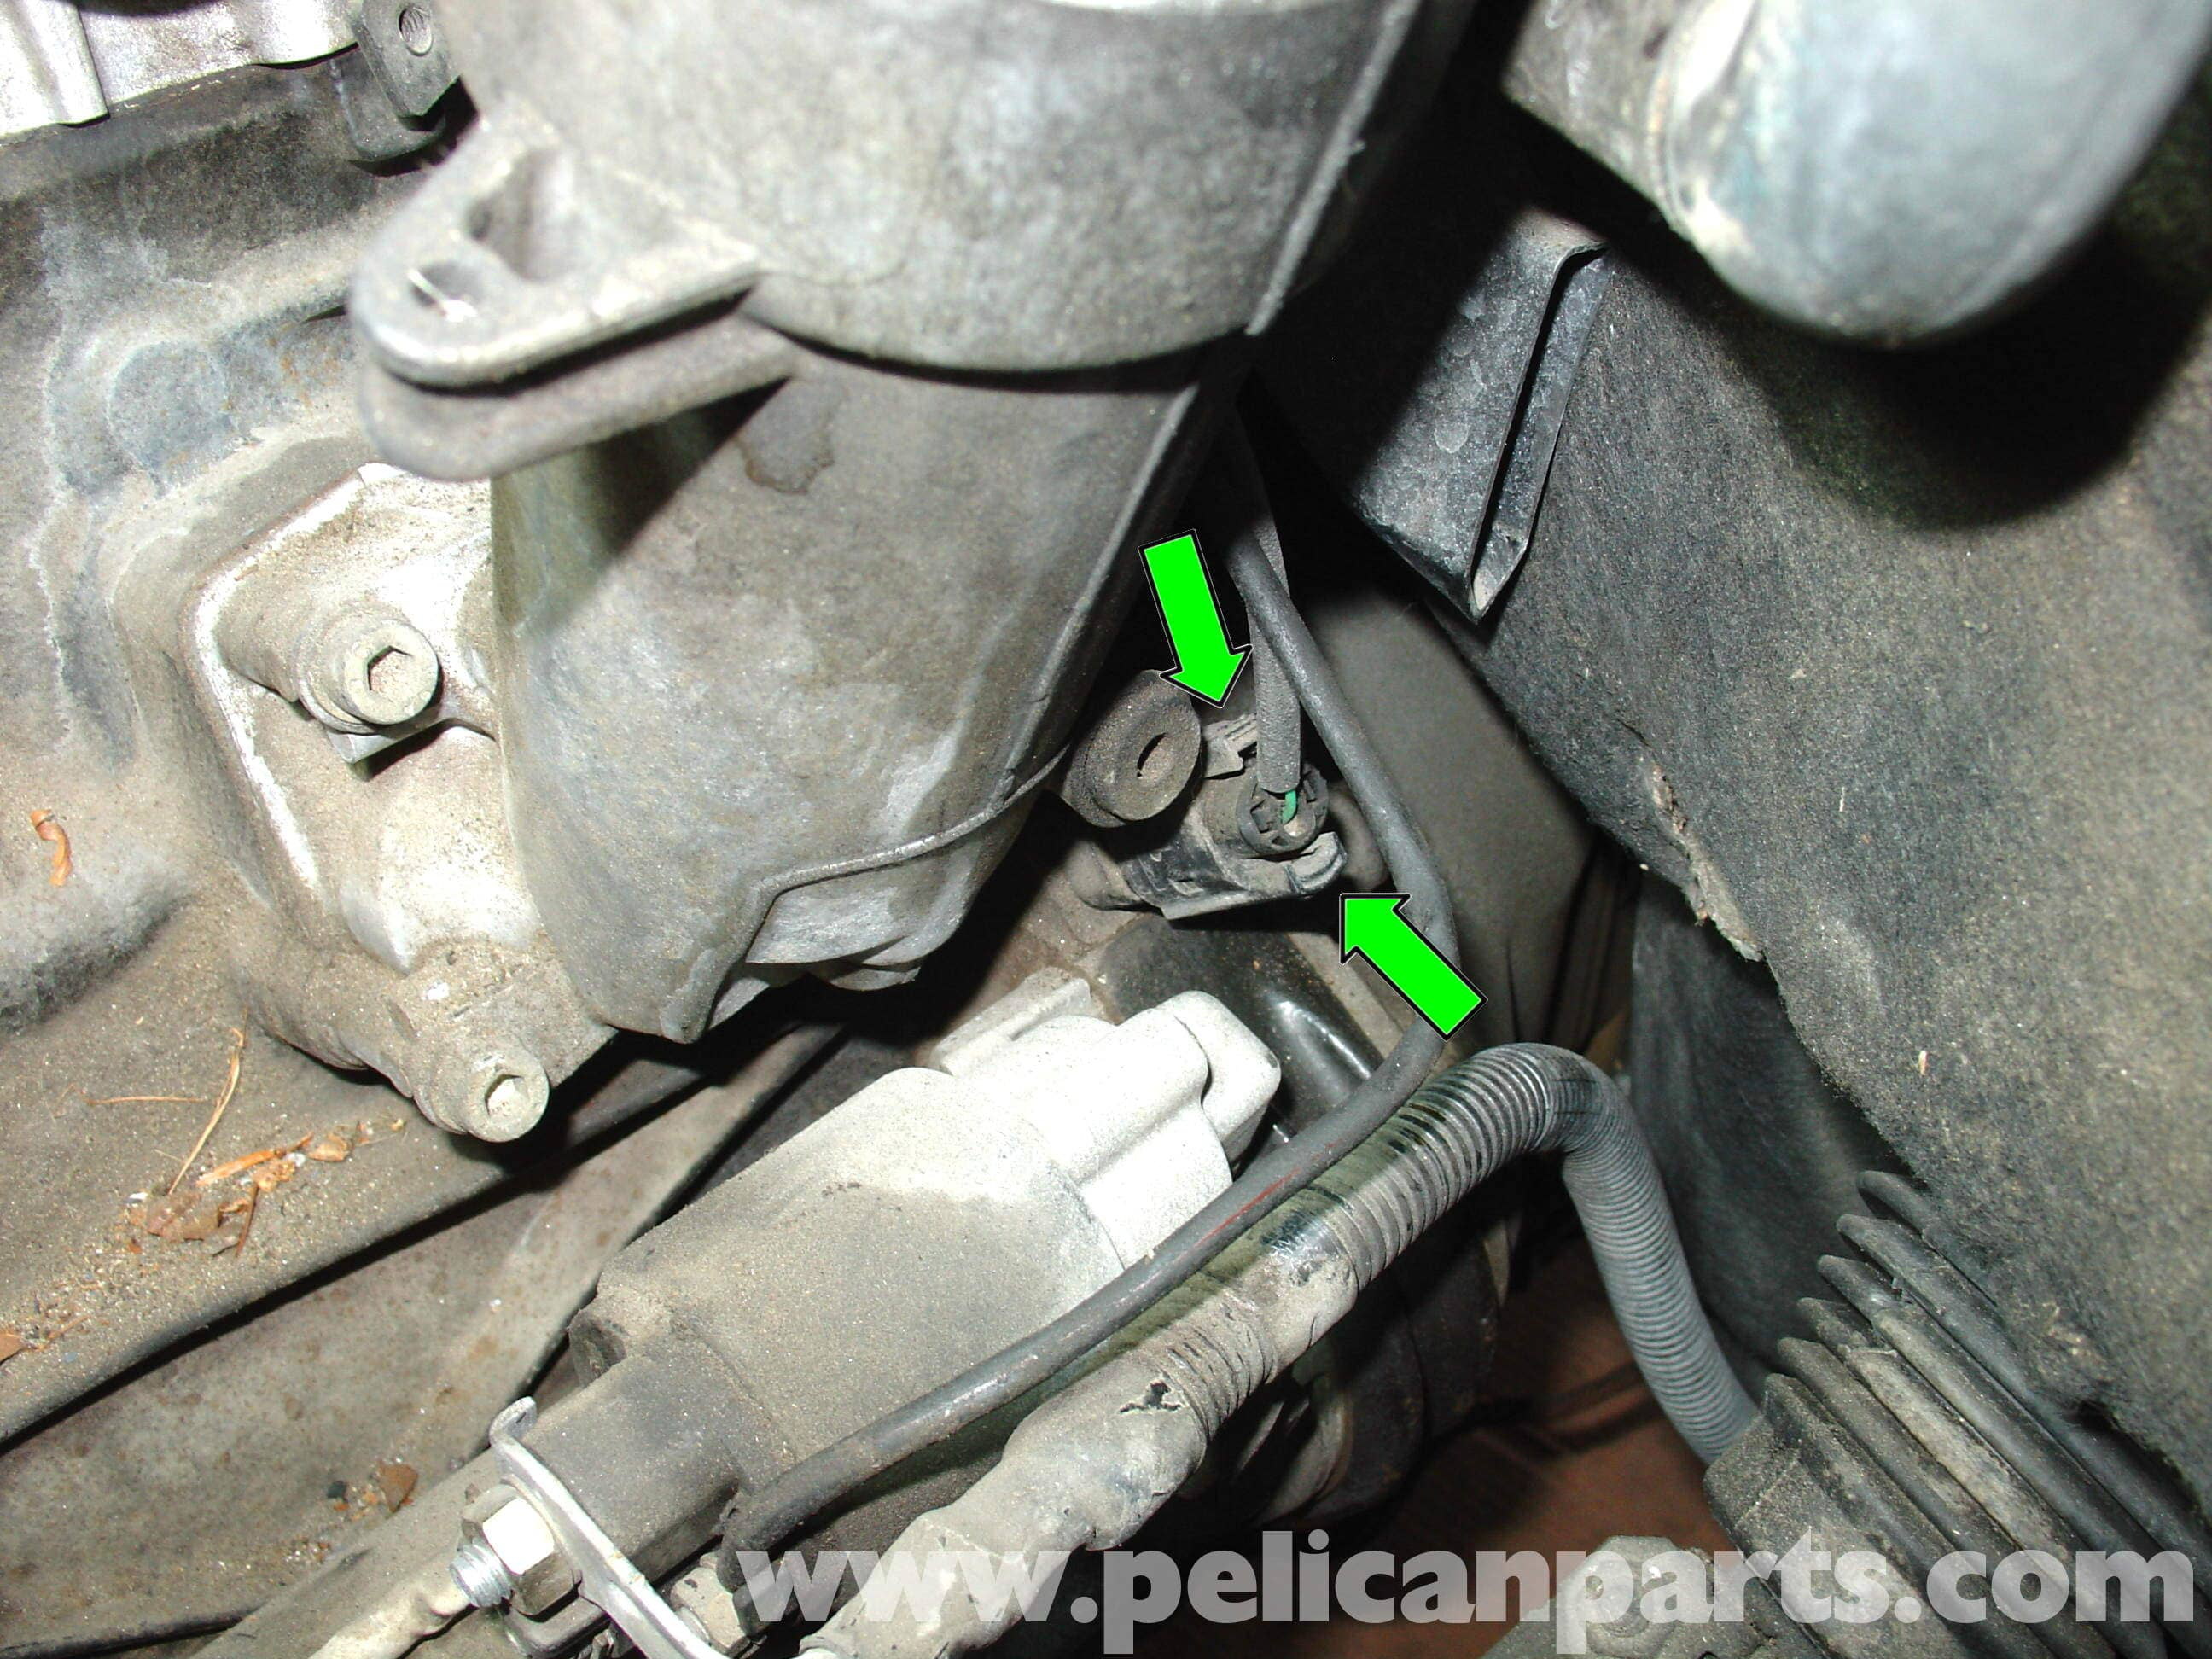 pic02 mercedes benz w210 crankshaft position sensor replacement (1996 03 1995 Mercedes-Benz E320 at gsmx.co